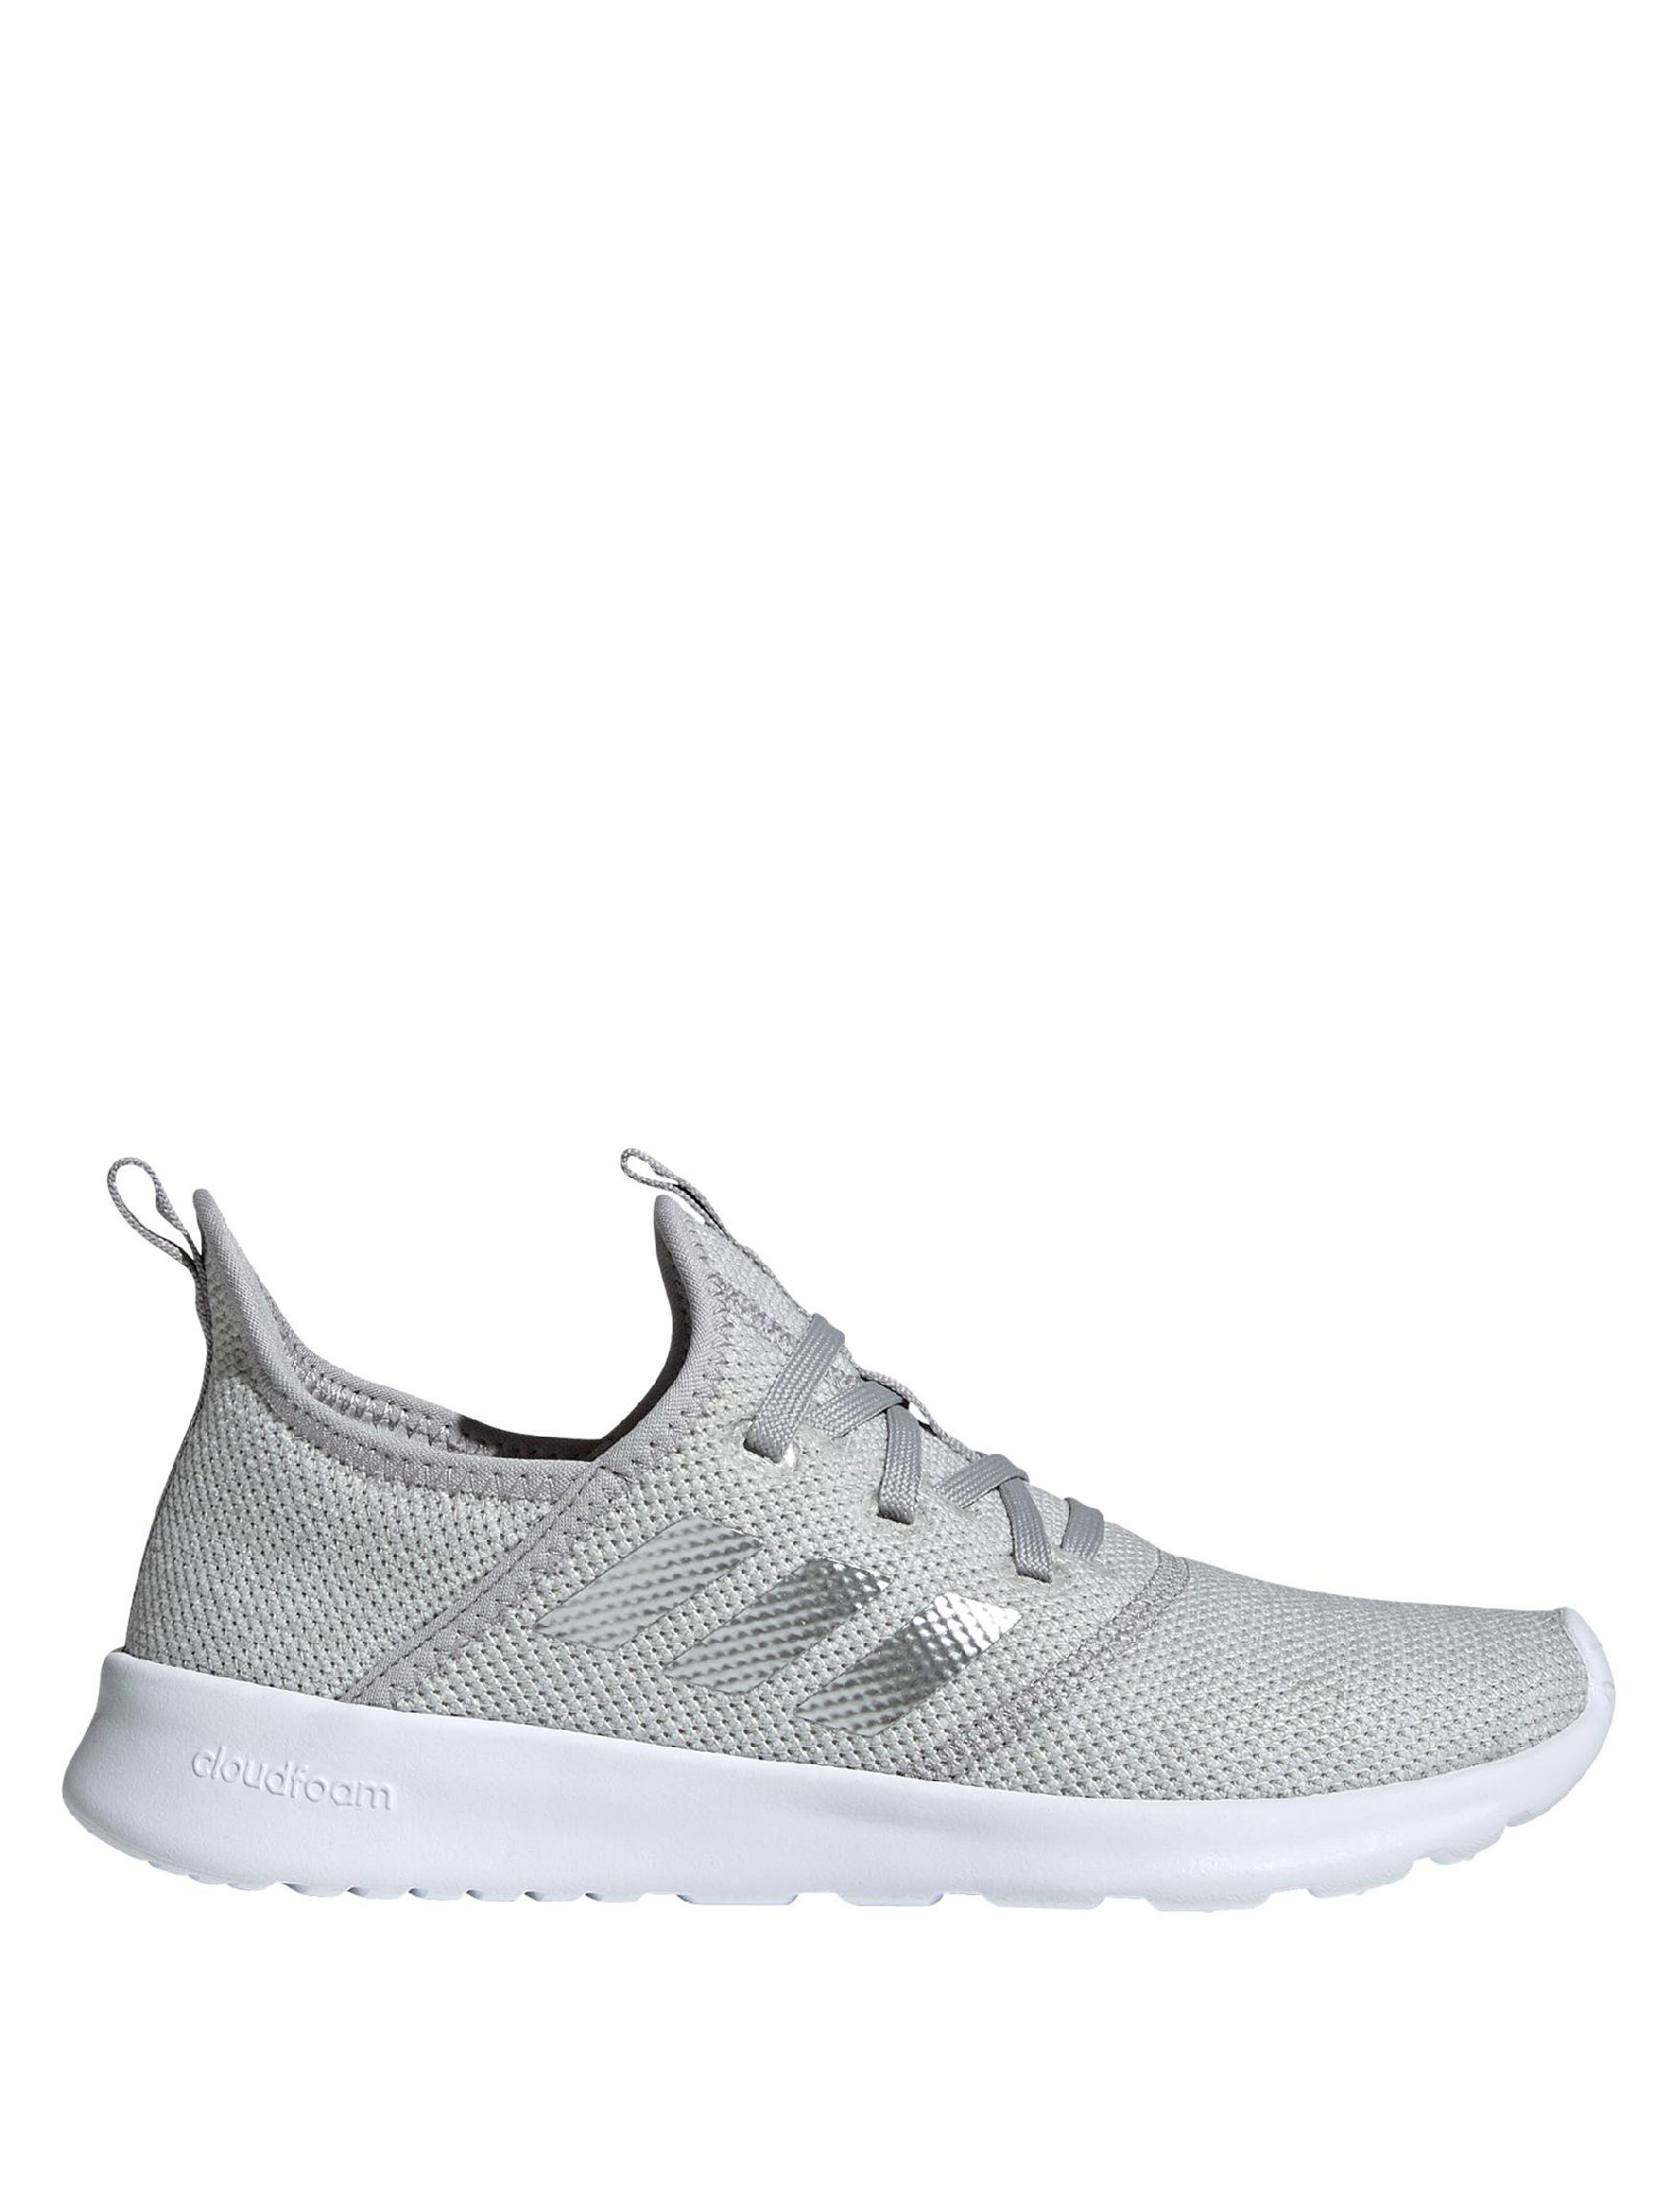 Adidas Grey / White Comfort Shoes